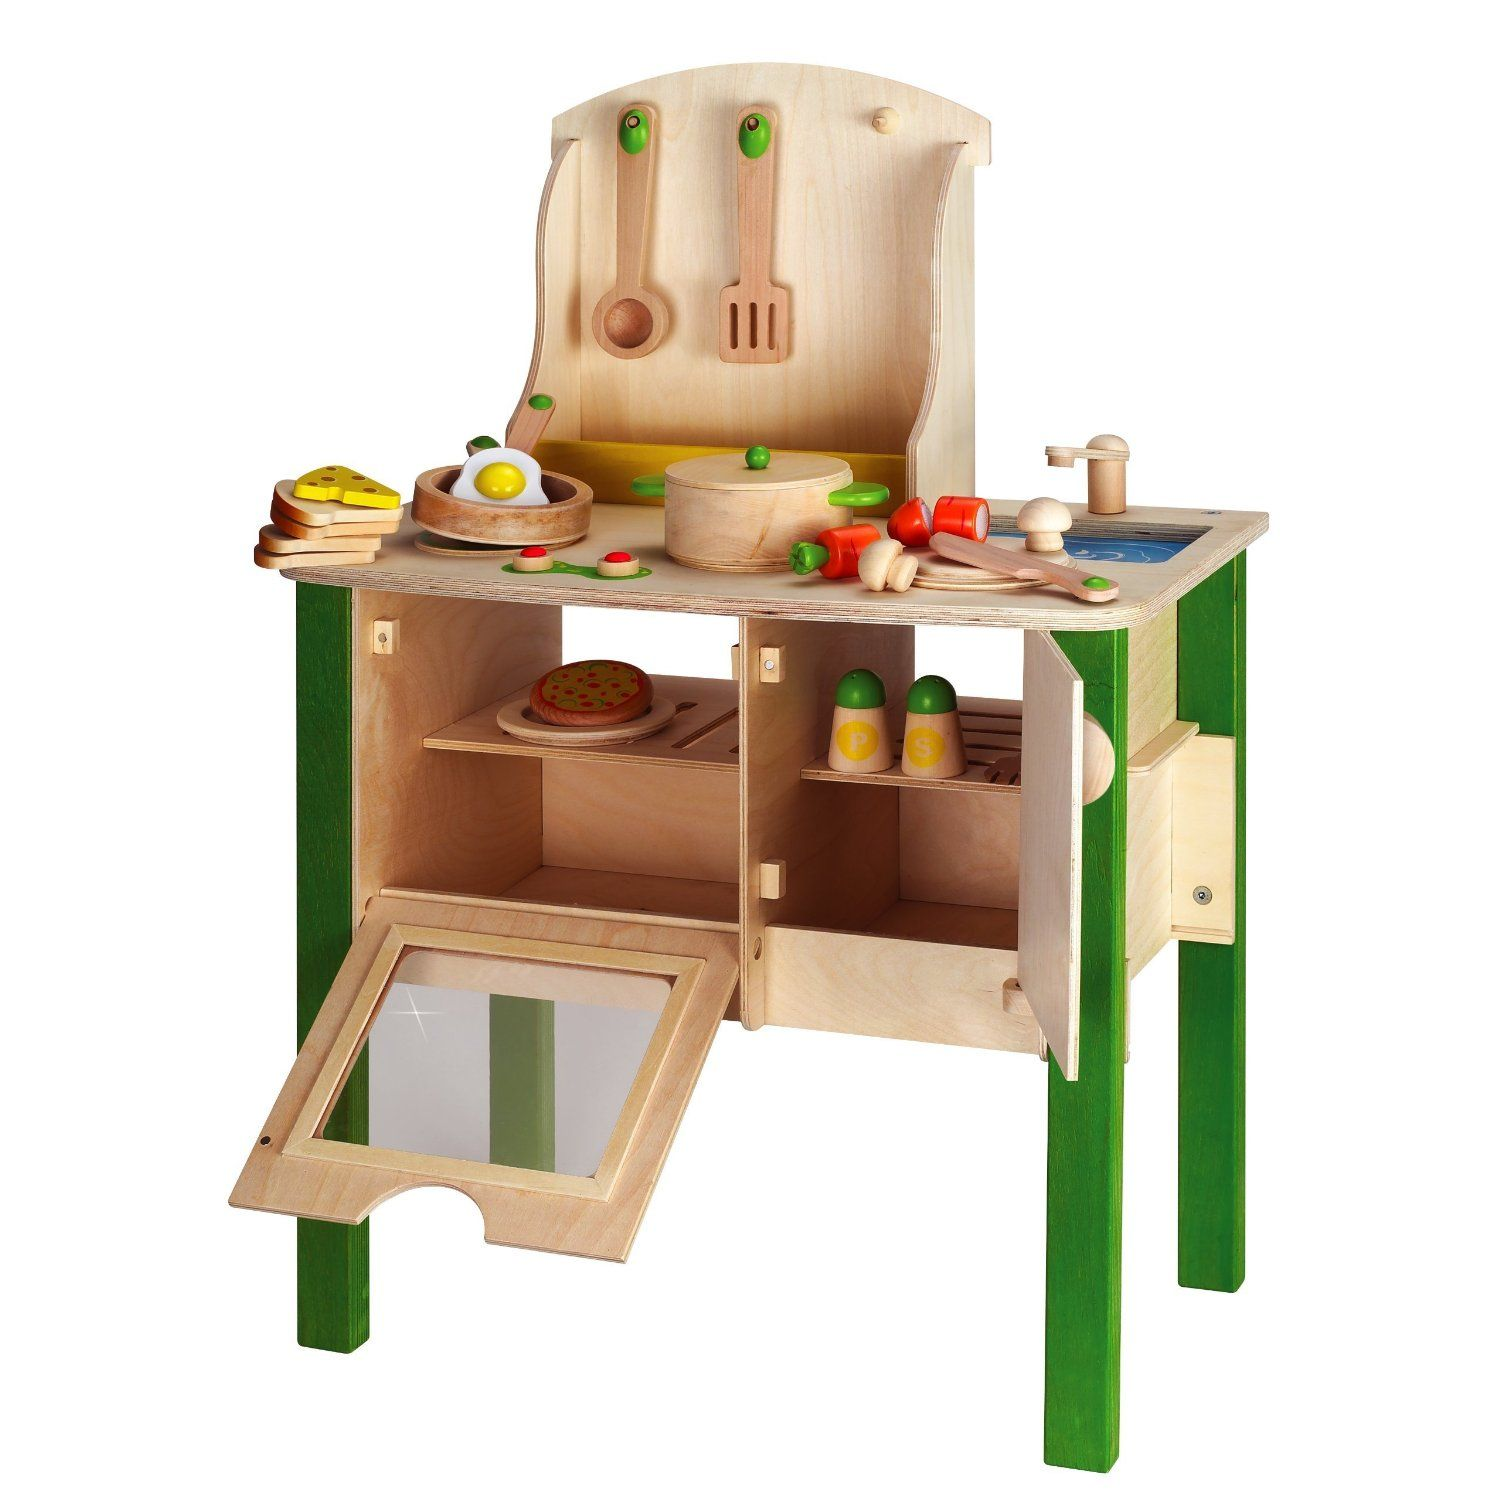 Wooden Childrens Kitchen Sets, wooden play kitchen | Kids\' Play ...